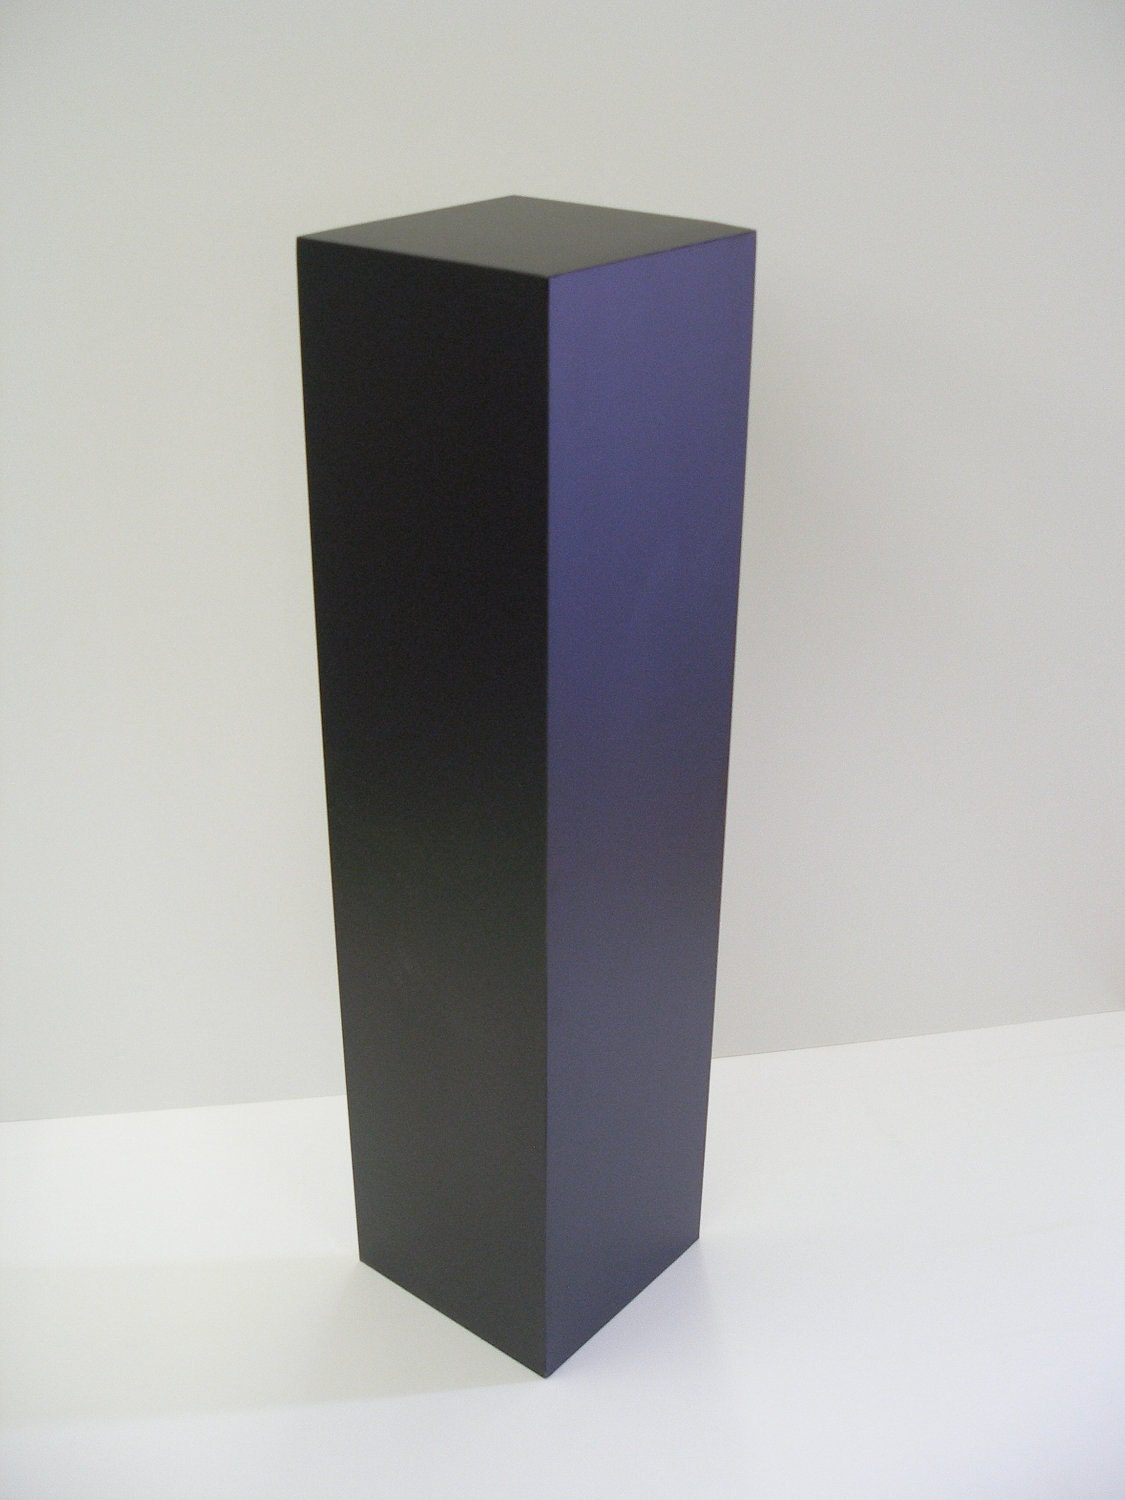 Pedestal To Display Your Art